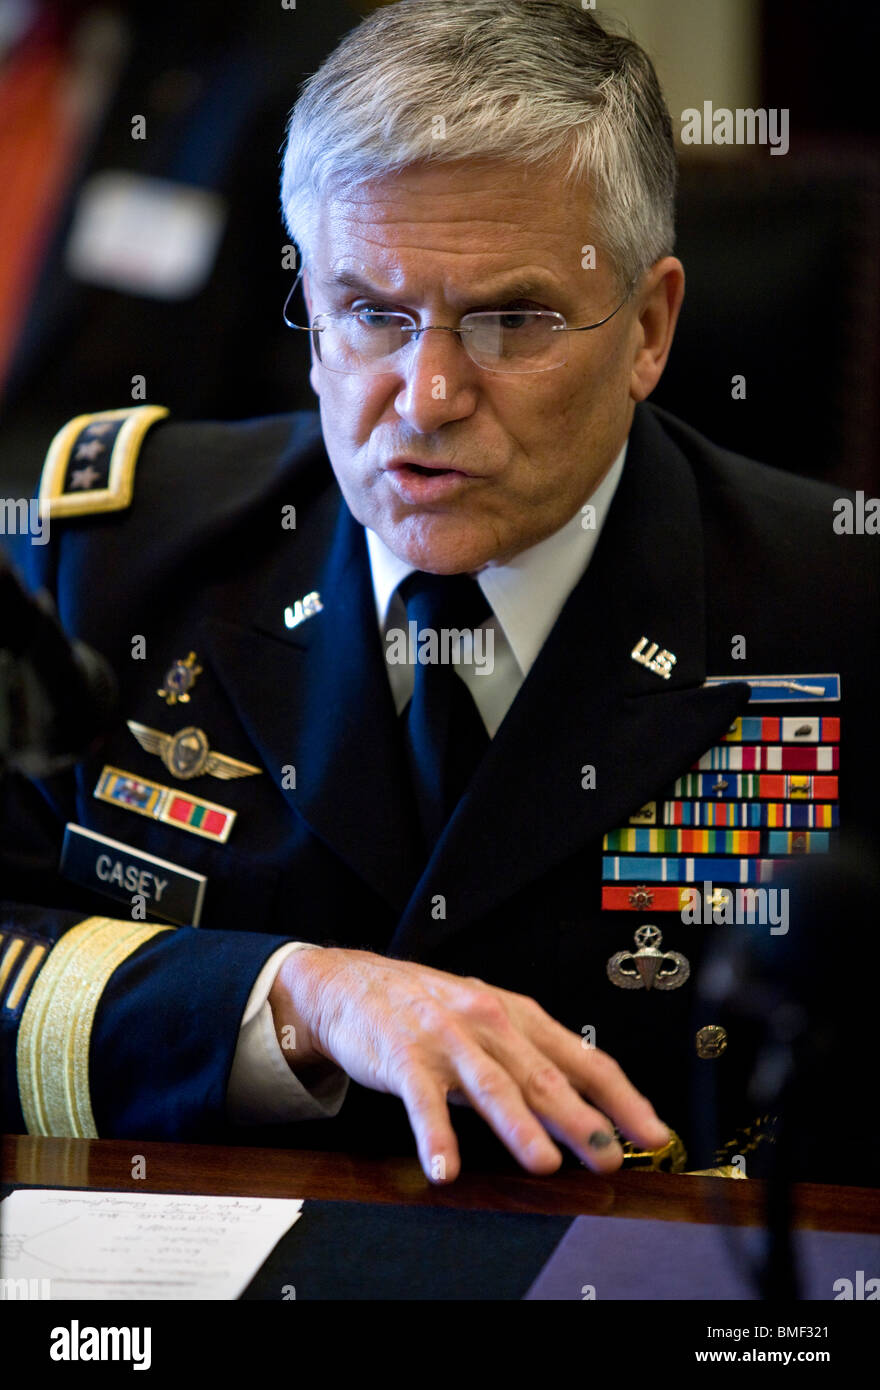 Army Chief of Staff General George Casey. - Stock Image